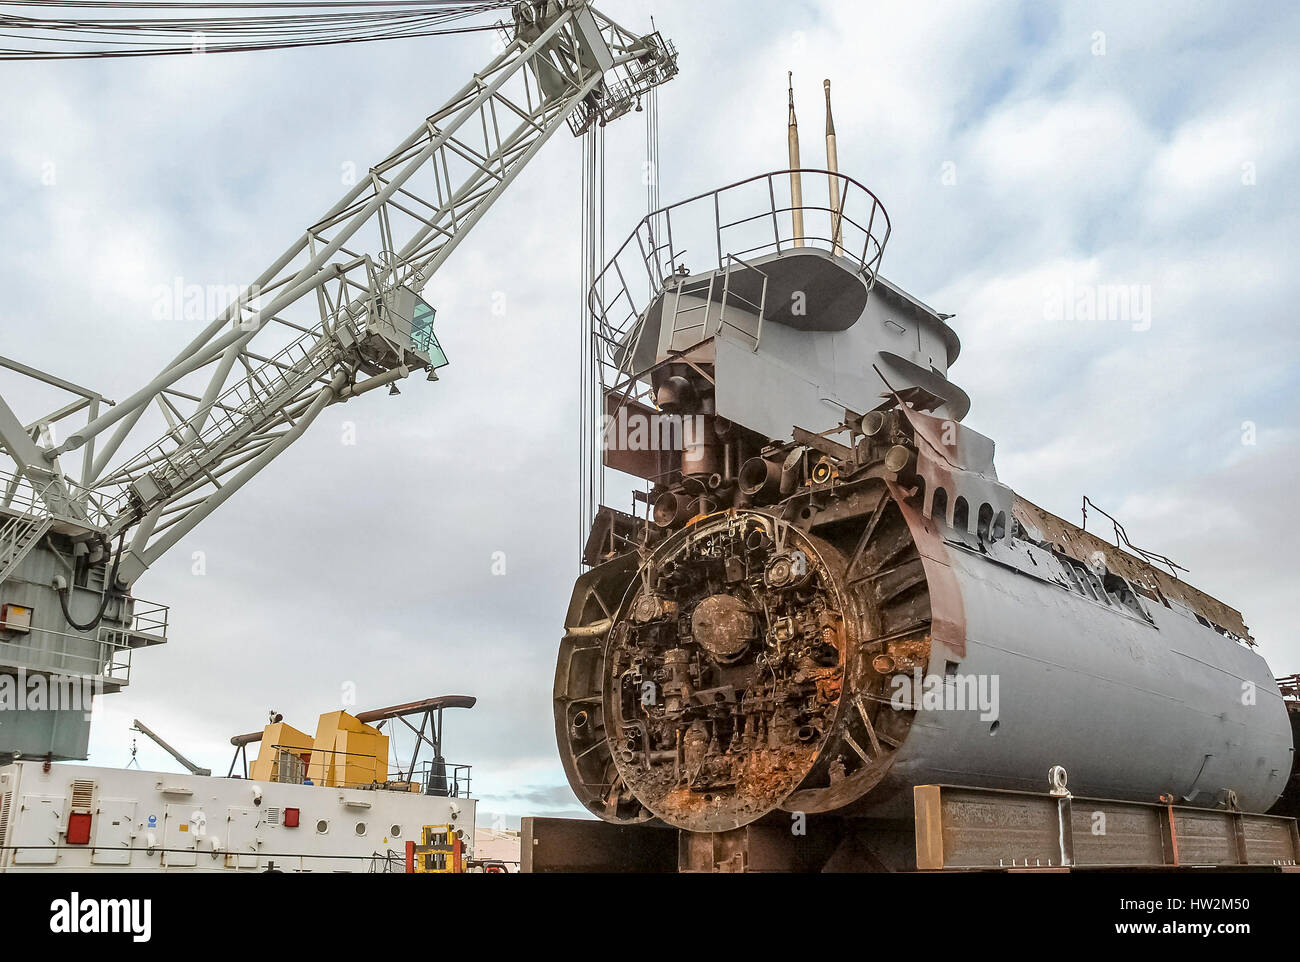 Merseytravel submarine U 534 gets cut into pieces at Birkenhead docks. It  is now a static display at the Woodside ferry terminal in Birkenhead.